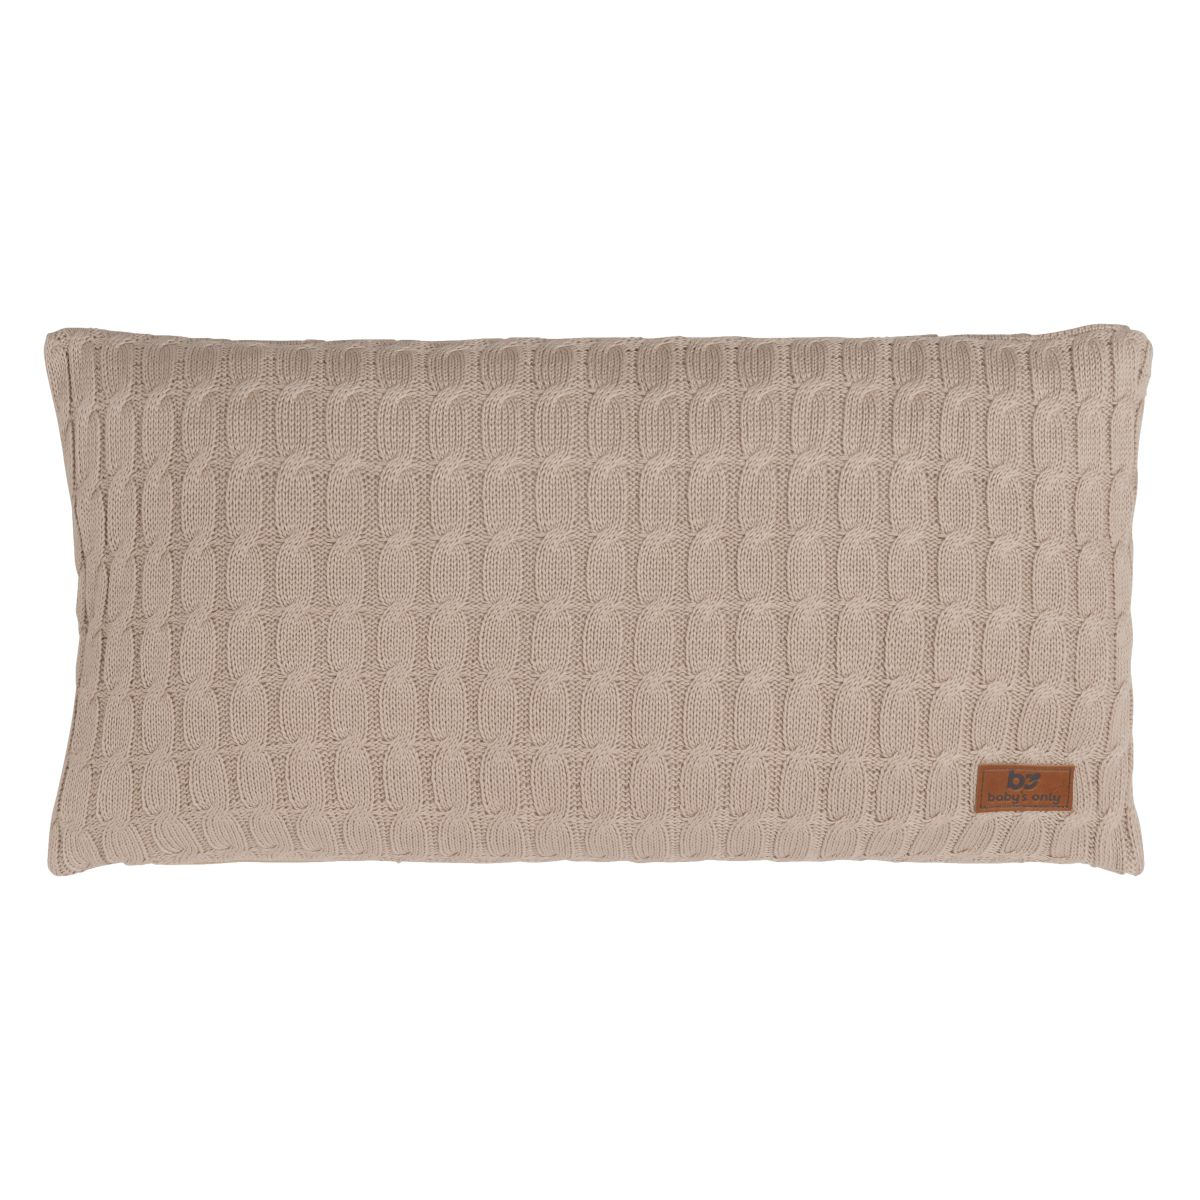 babys only 0131612 kussen 60x30 cable beige 1